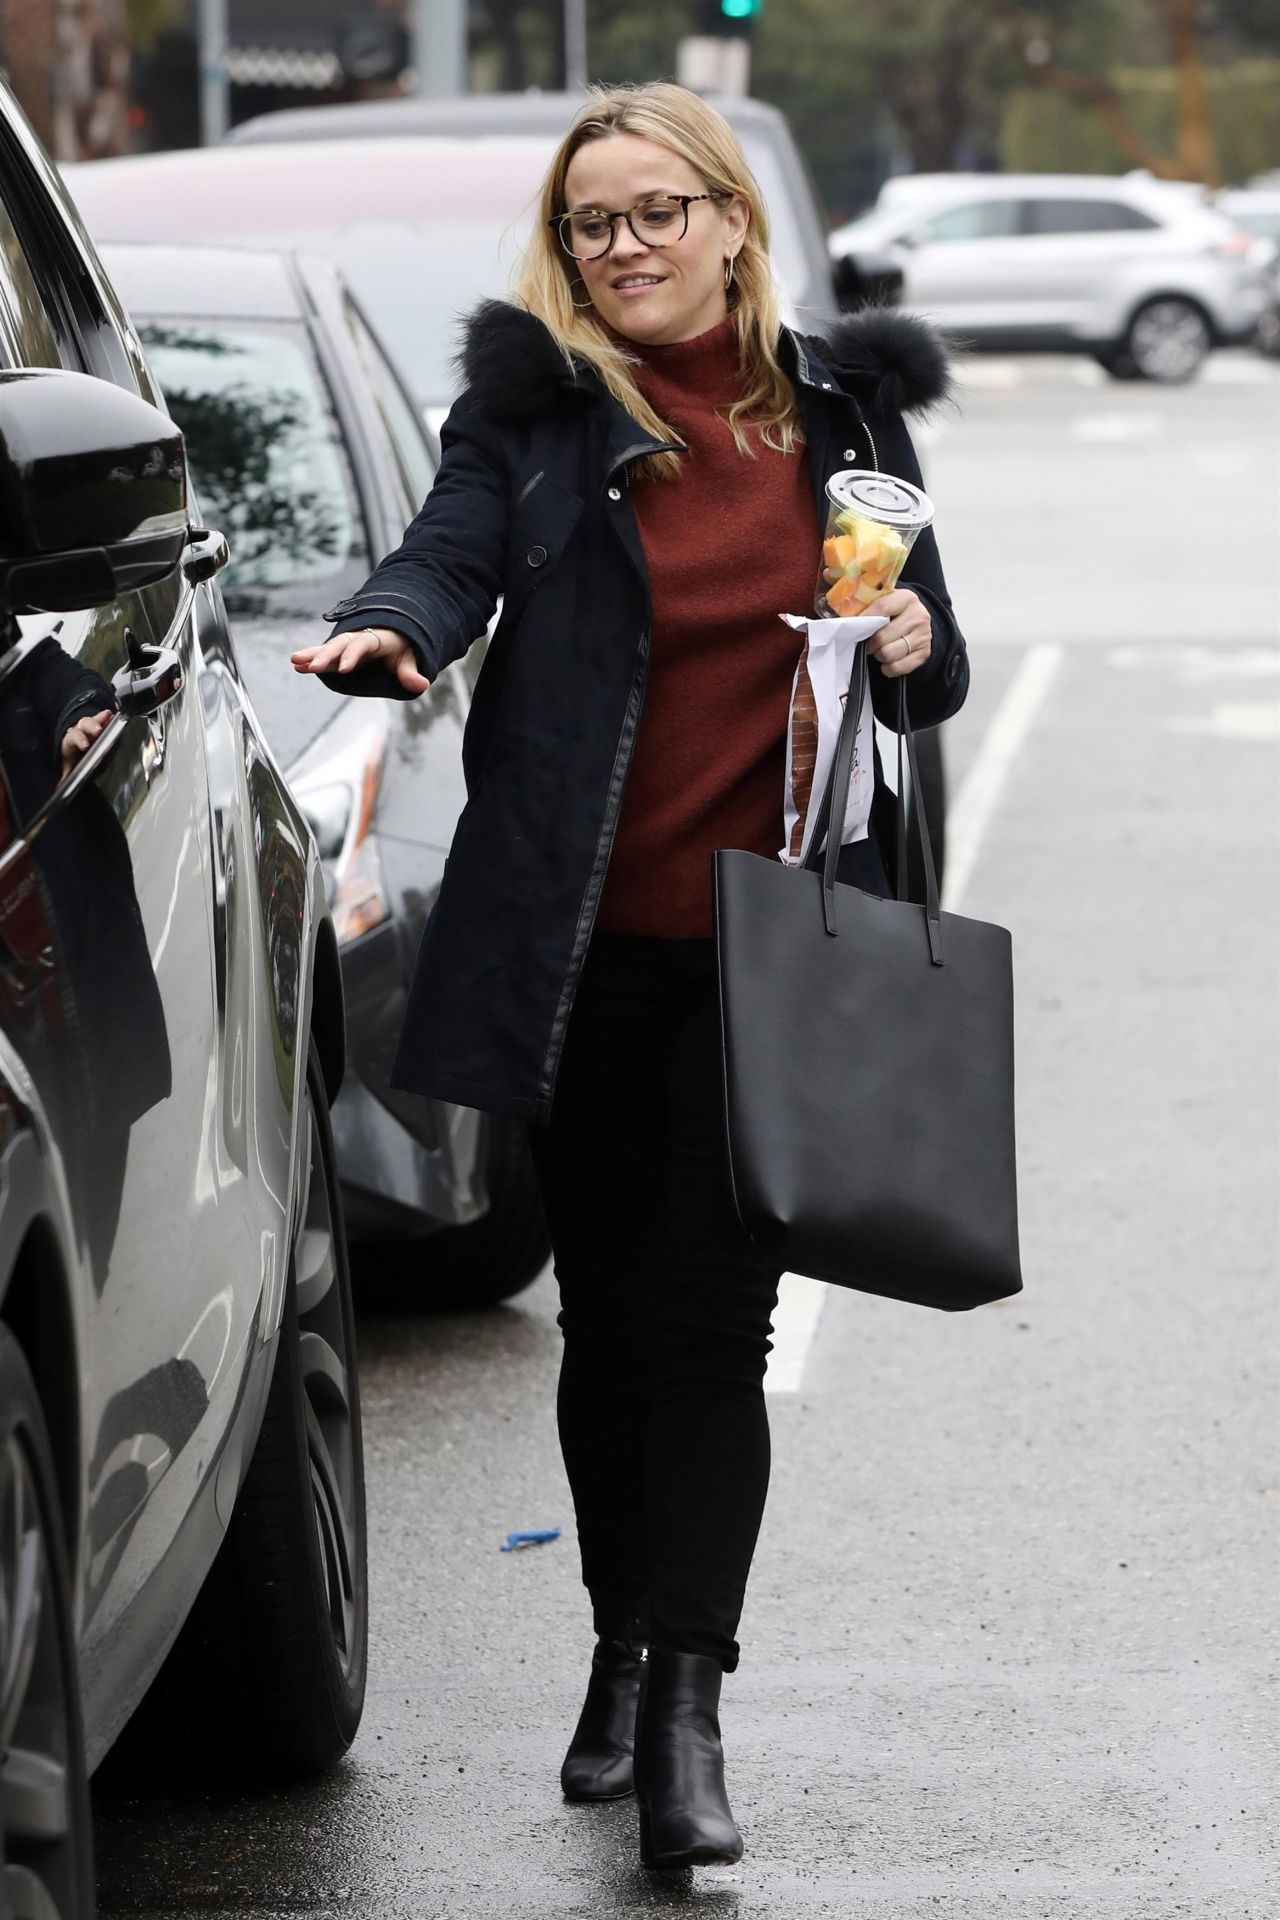 Reese Witherspoon Jim Toth Reese Witherspoon - Ou...